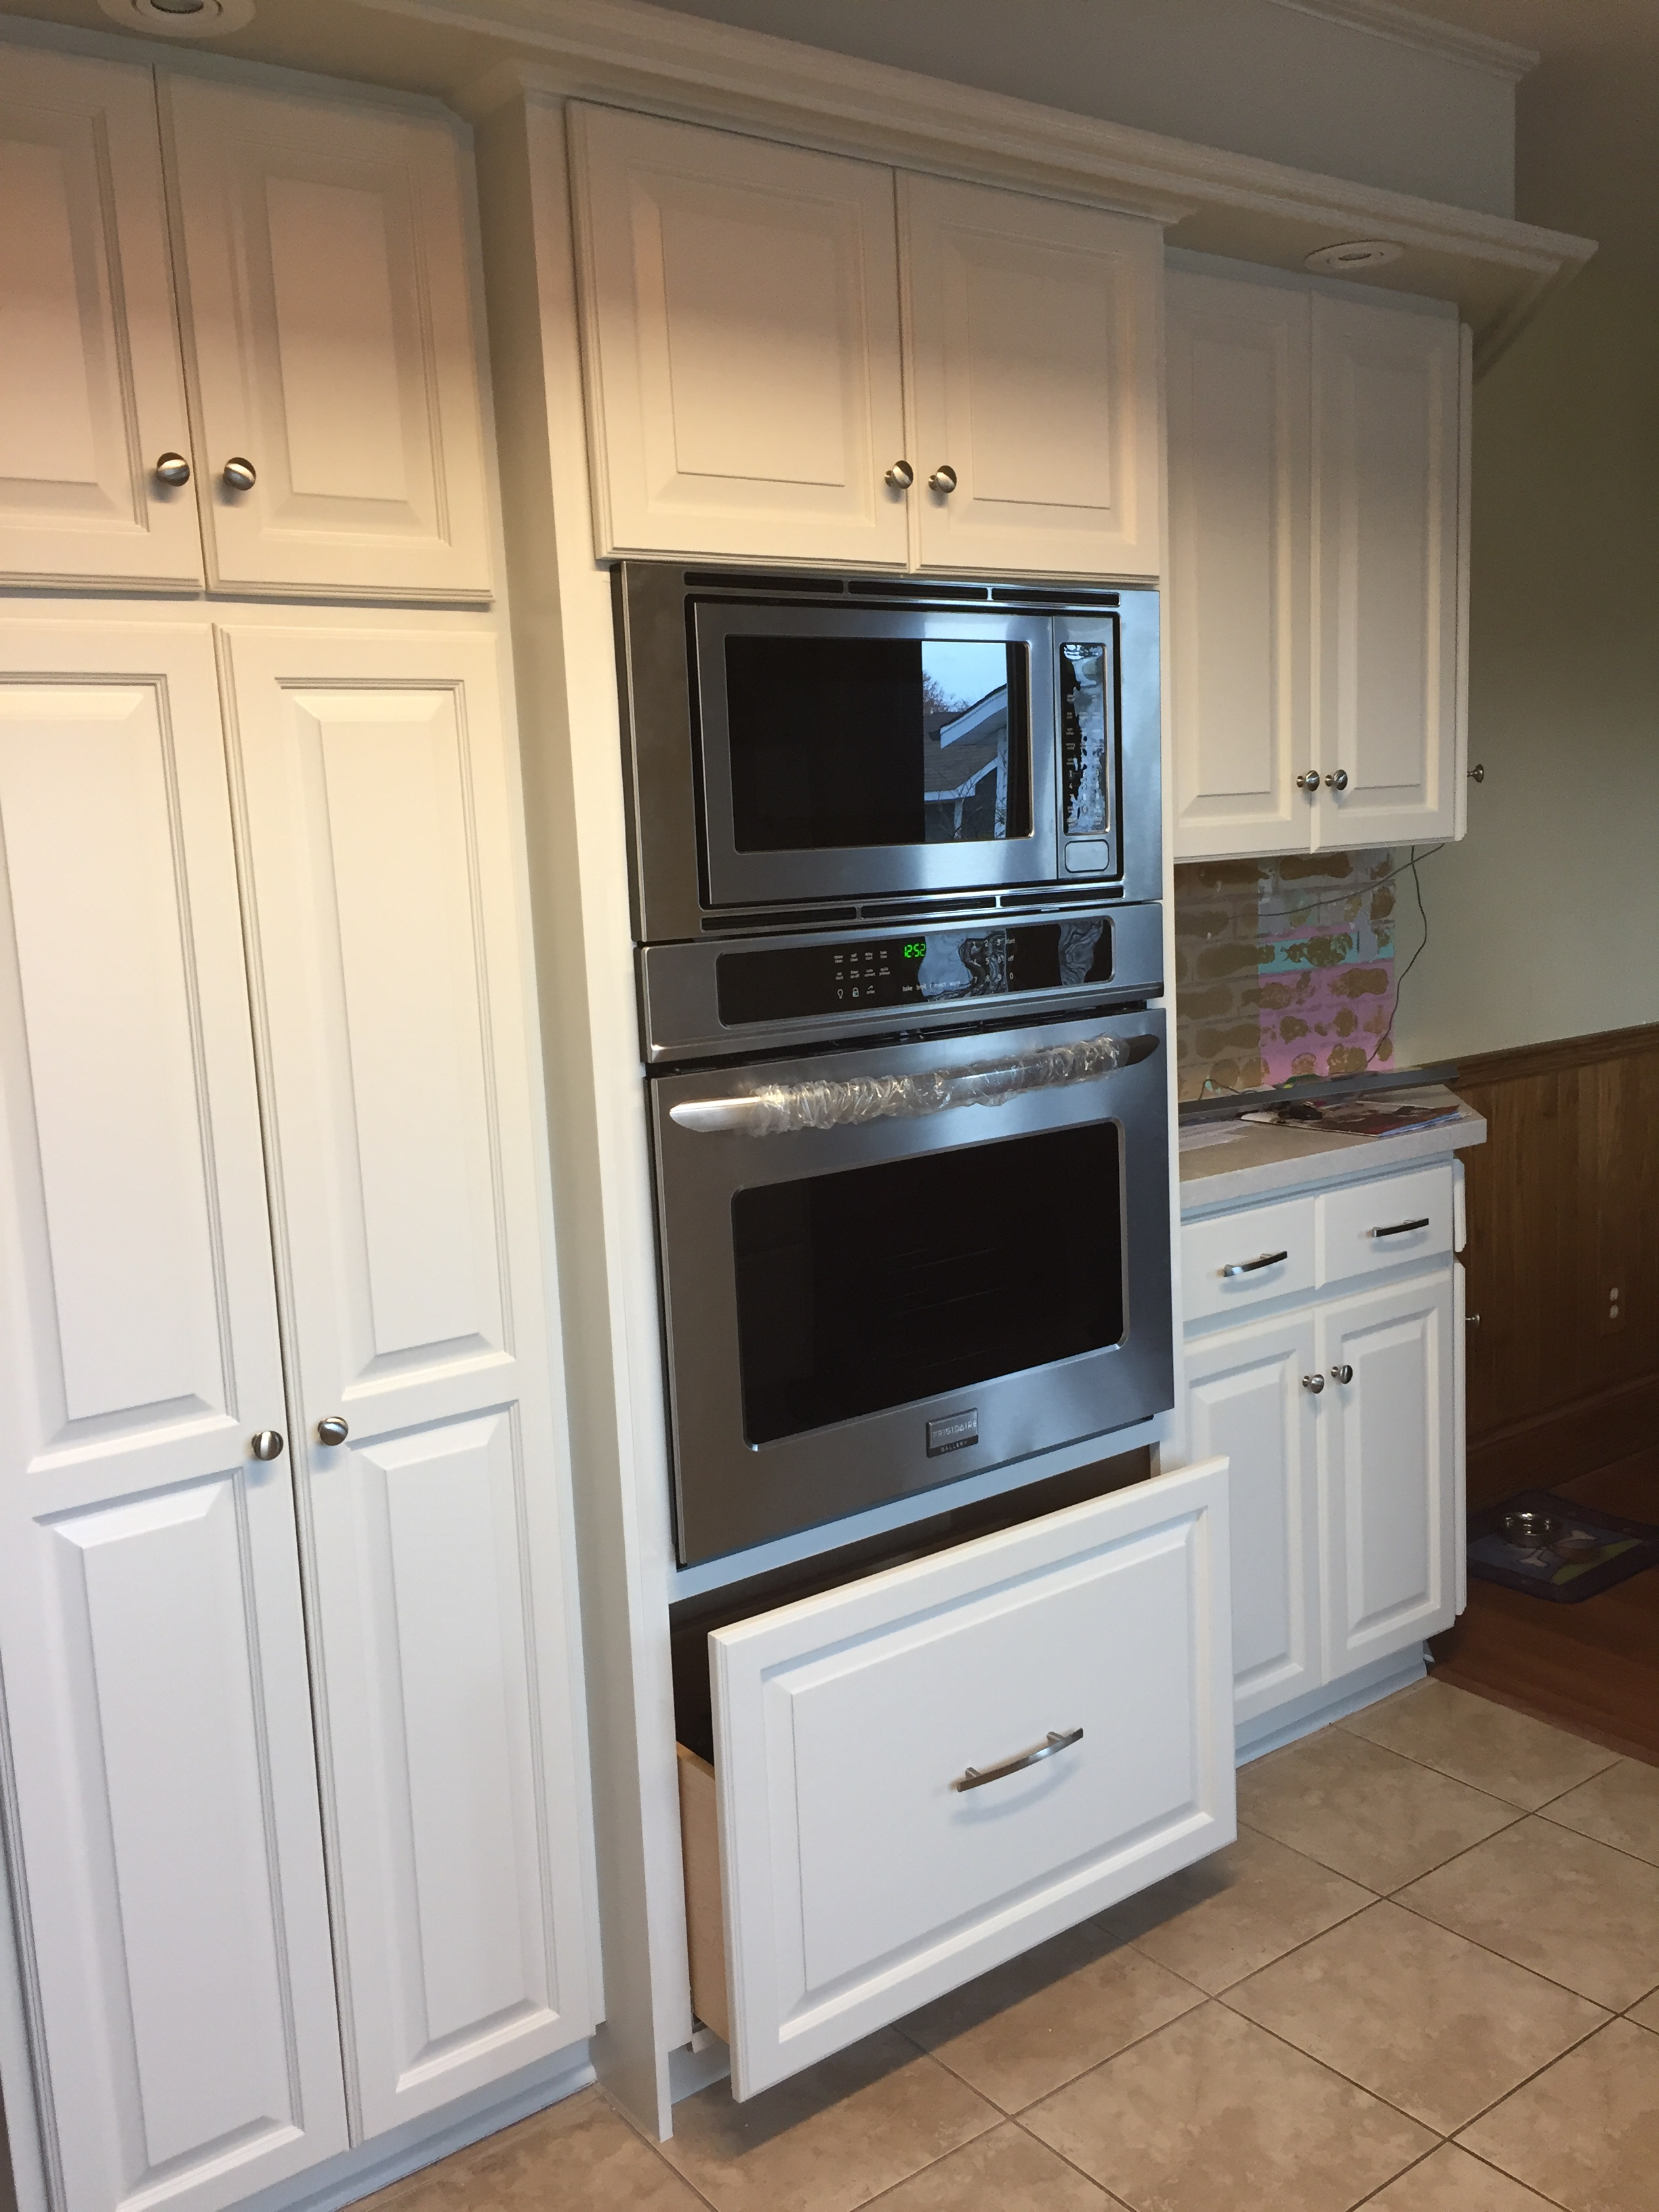 Incredible Kitchen Change - After